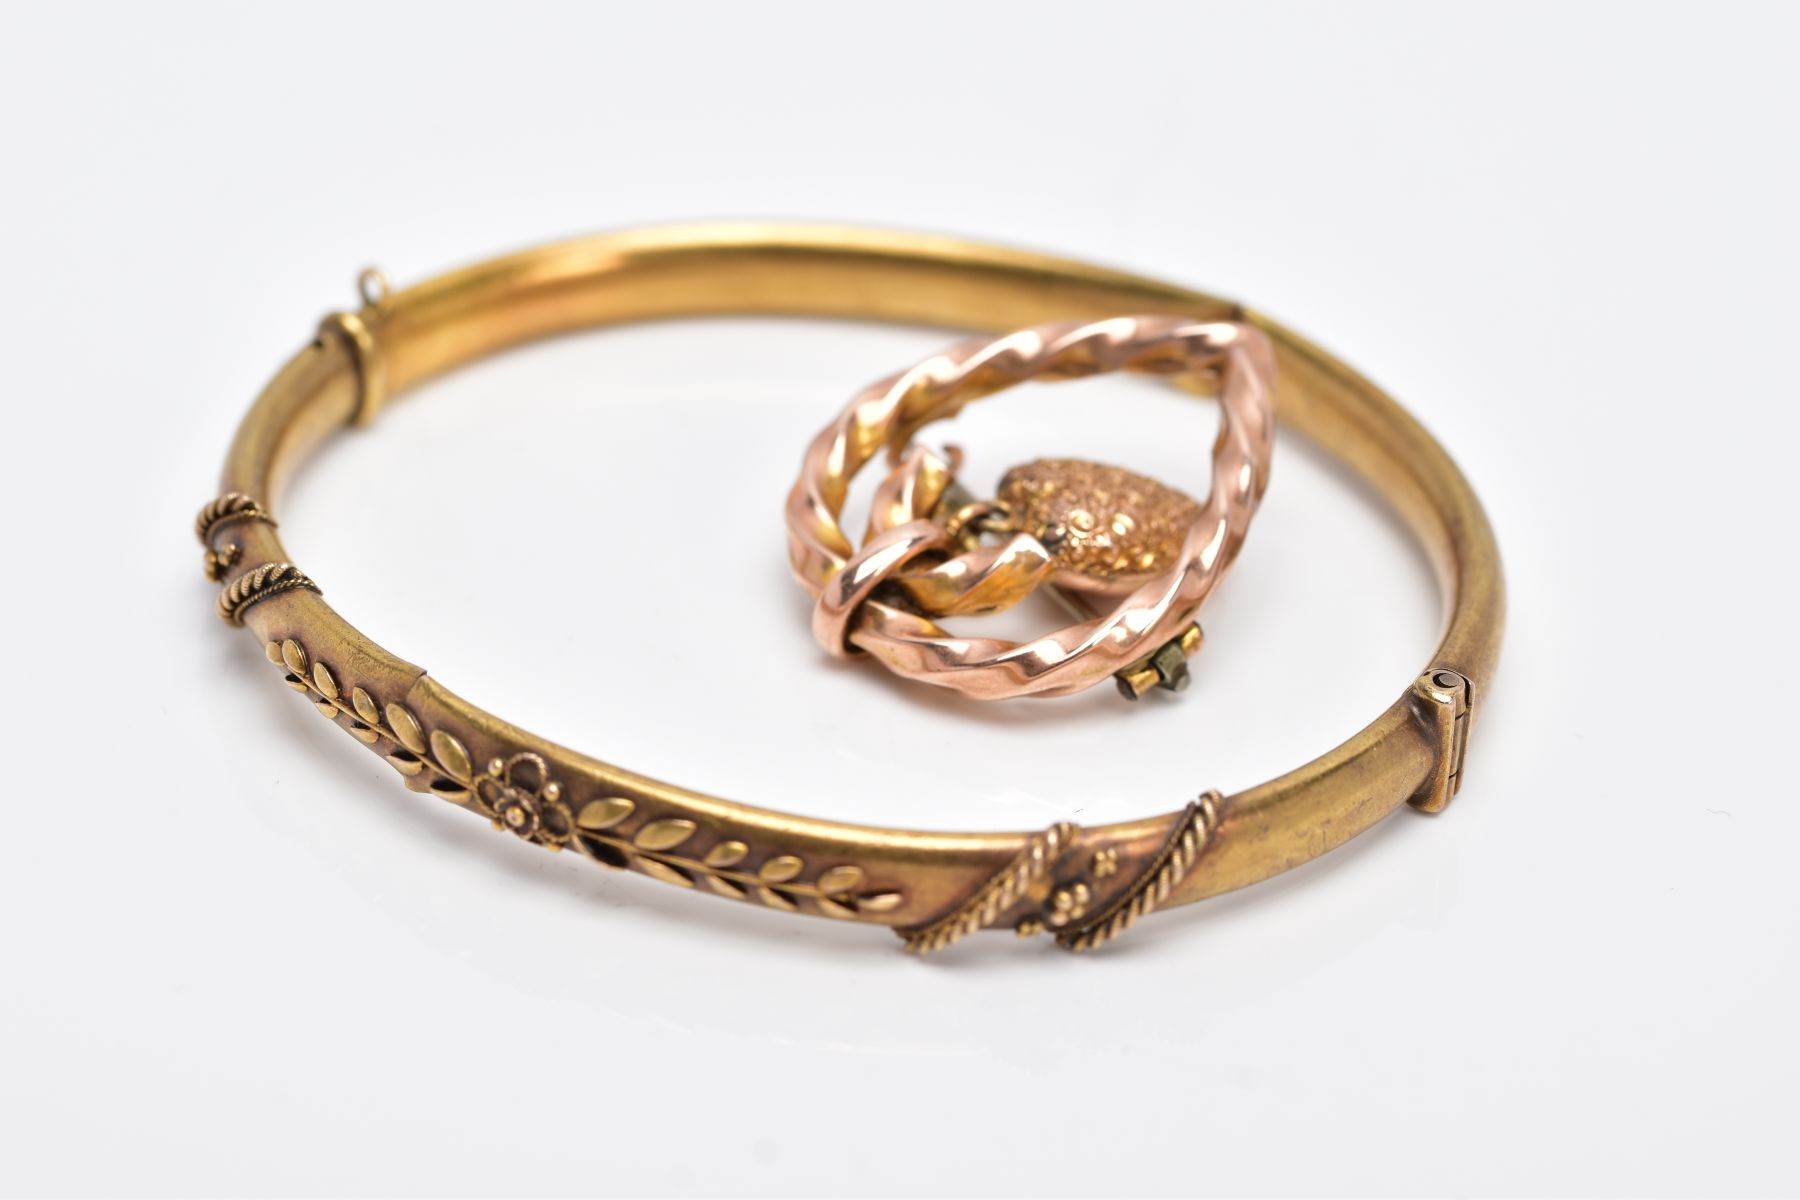 A LATE VICTORIAN BANGLE AND BROOCH, the AF hinged bangle with applied floral and bead design, - Image 4 of 4